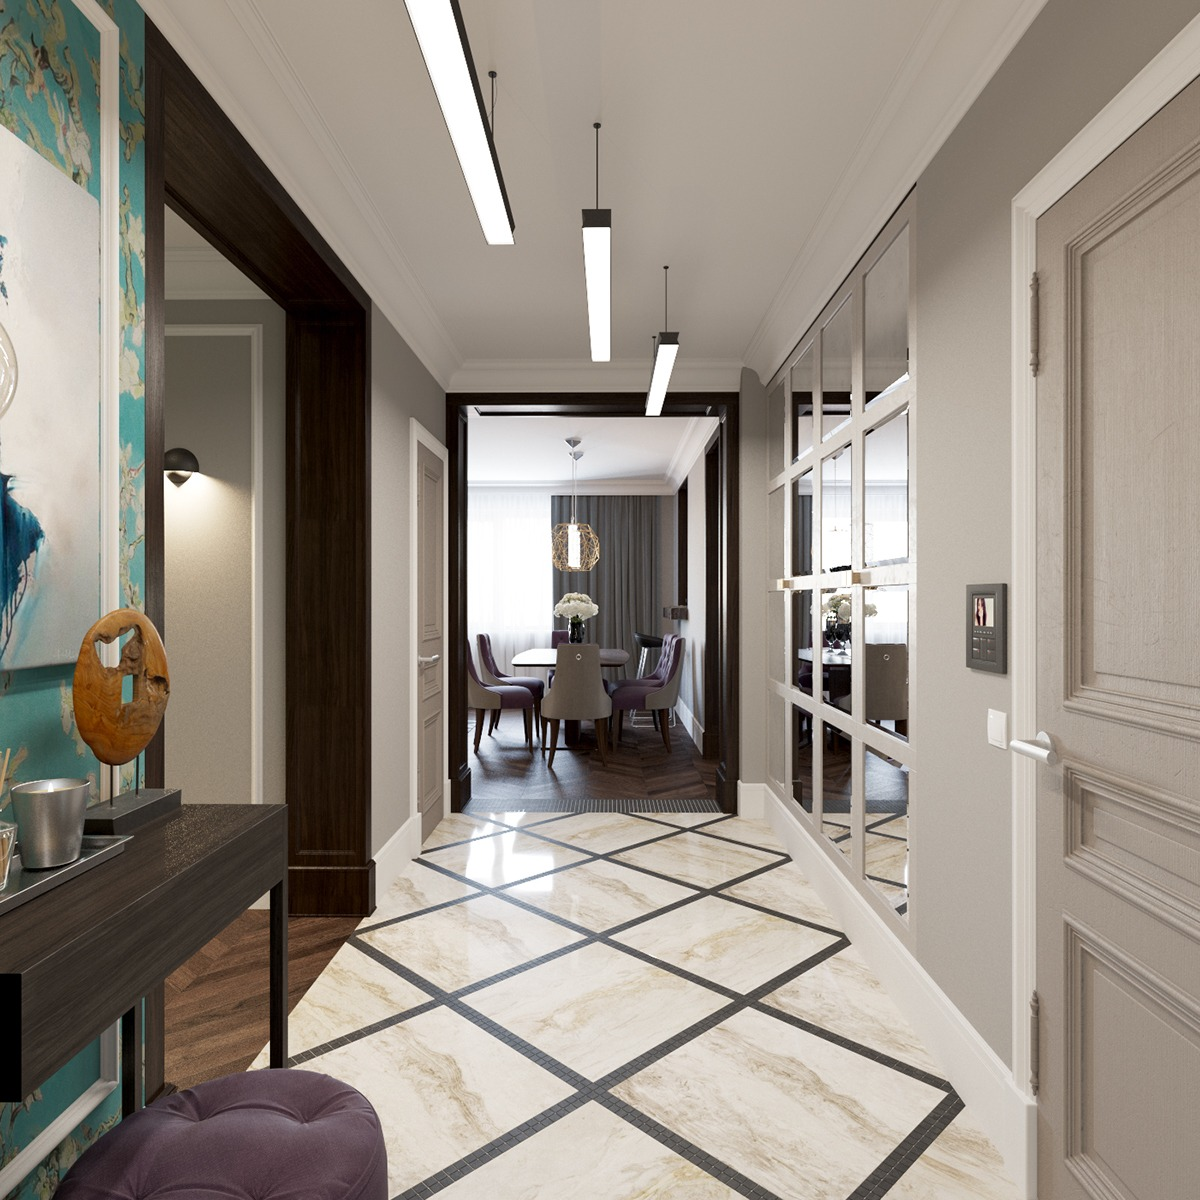 2 beautiful home interiors in art deco style for Interior home